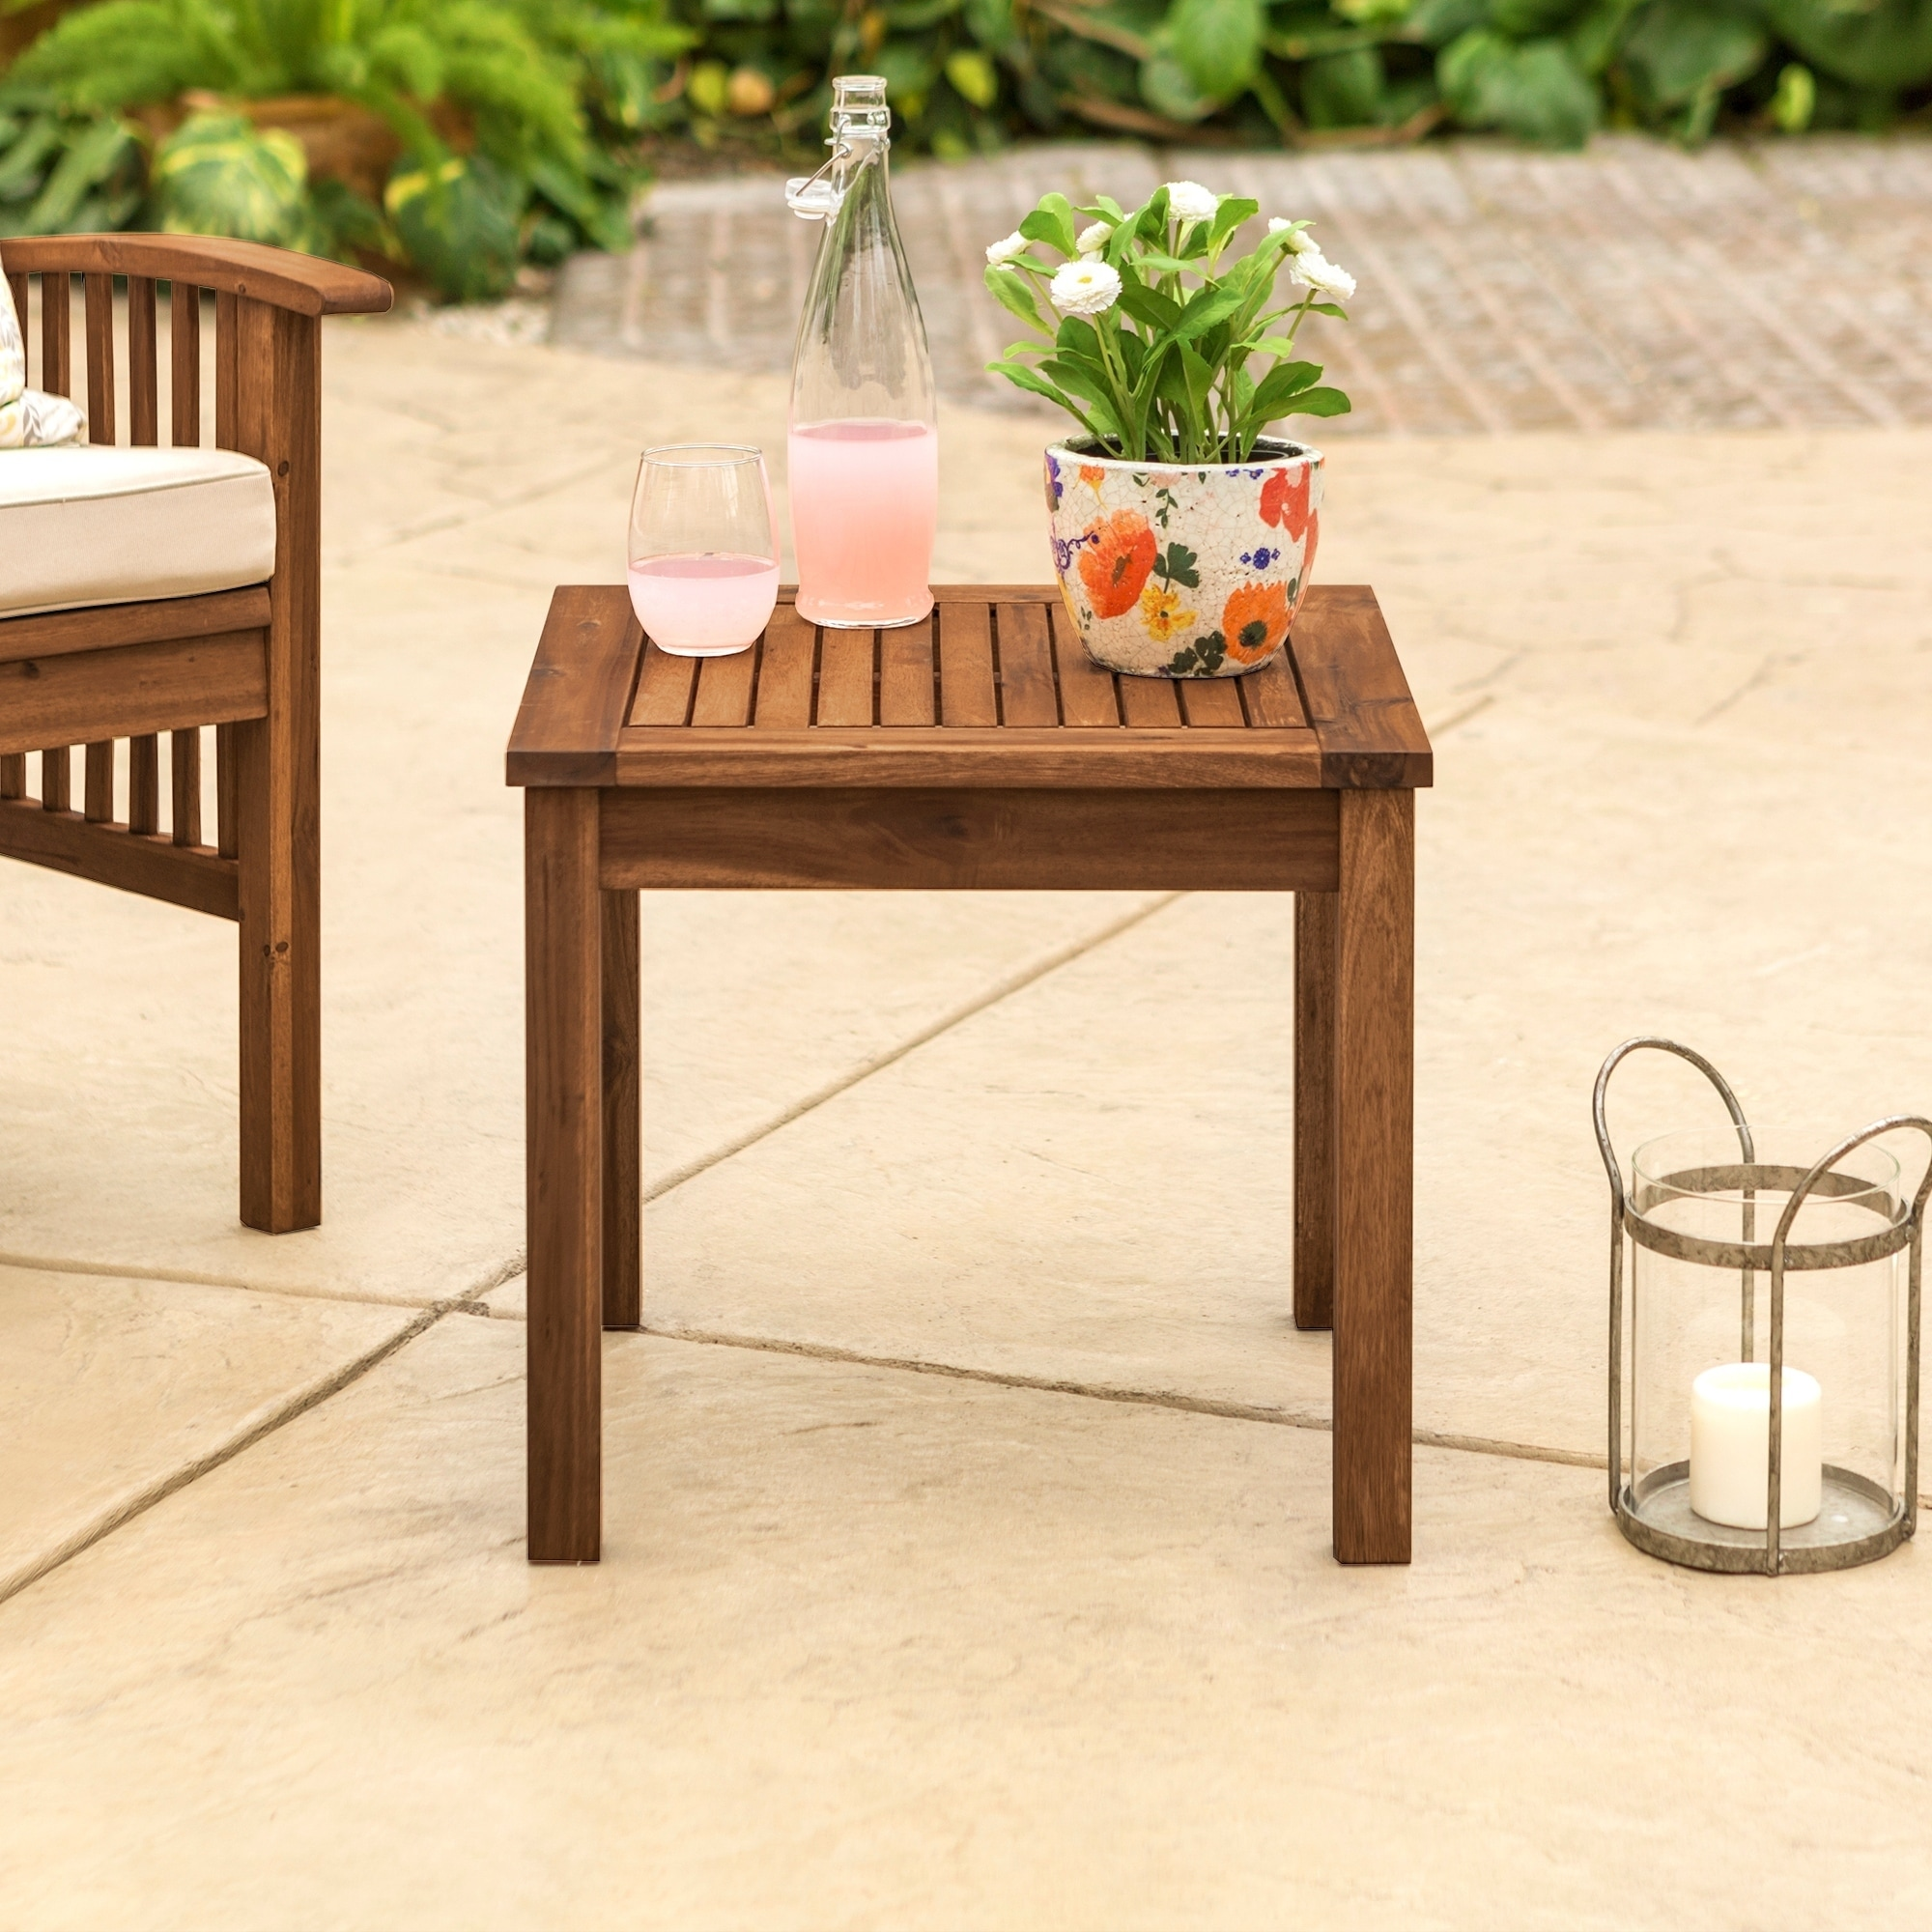 Shop 20 Inch Wood Patio Simple Side Table   Free Shipping Today    Overstock.com   19887182